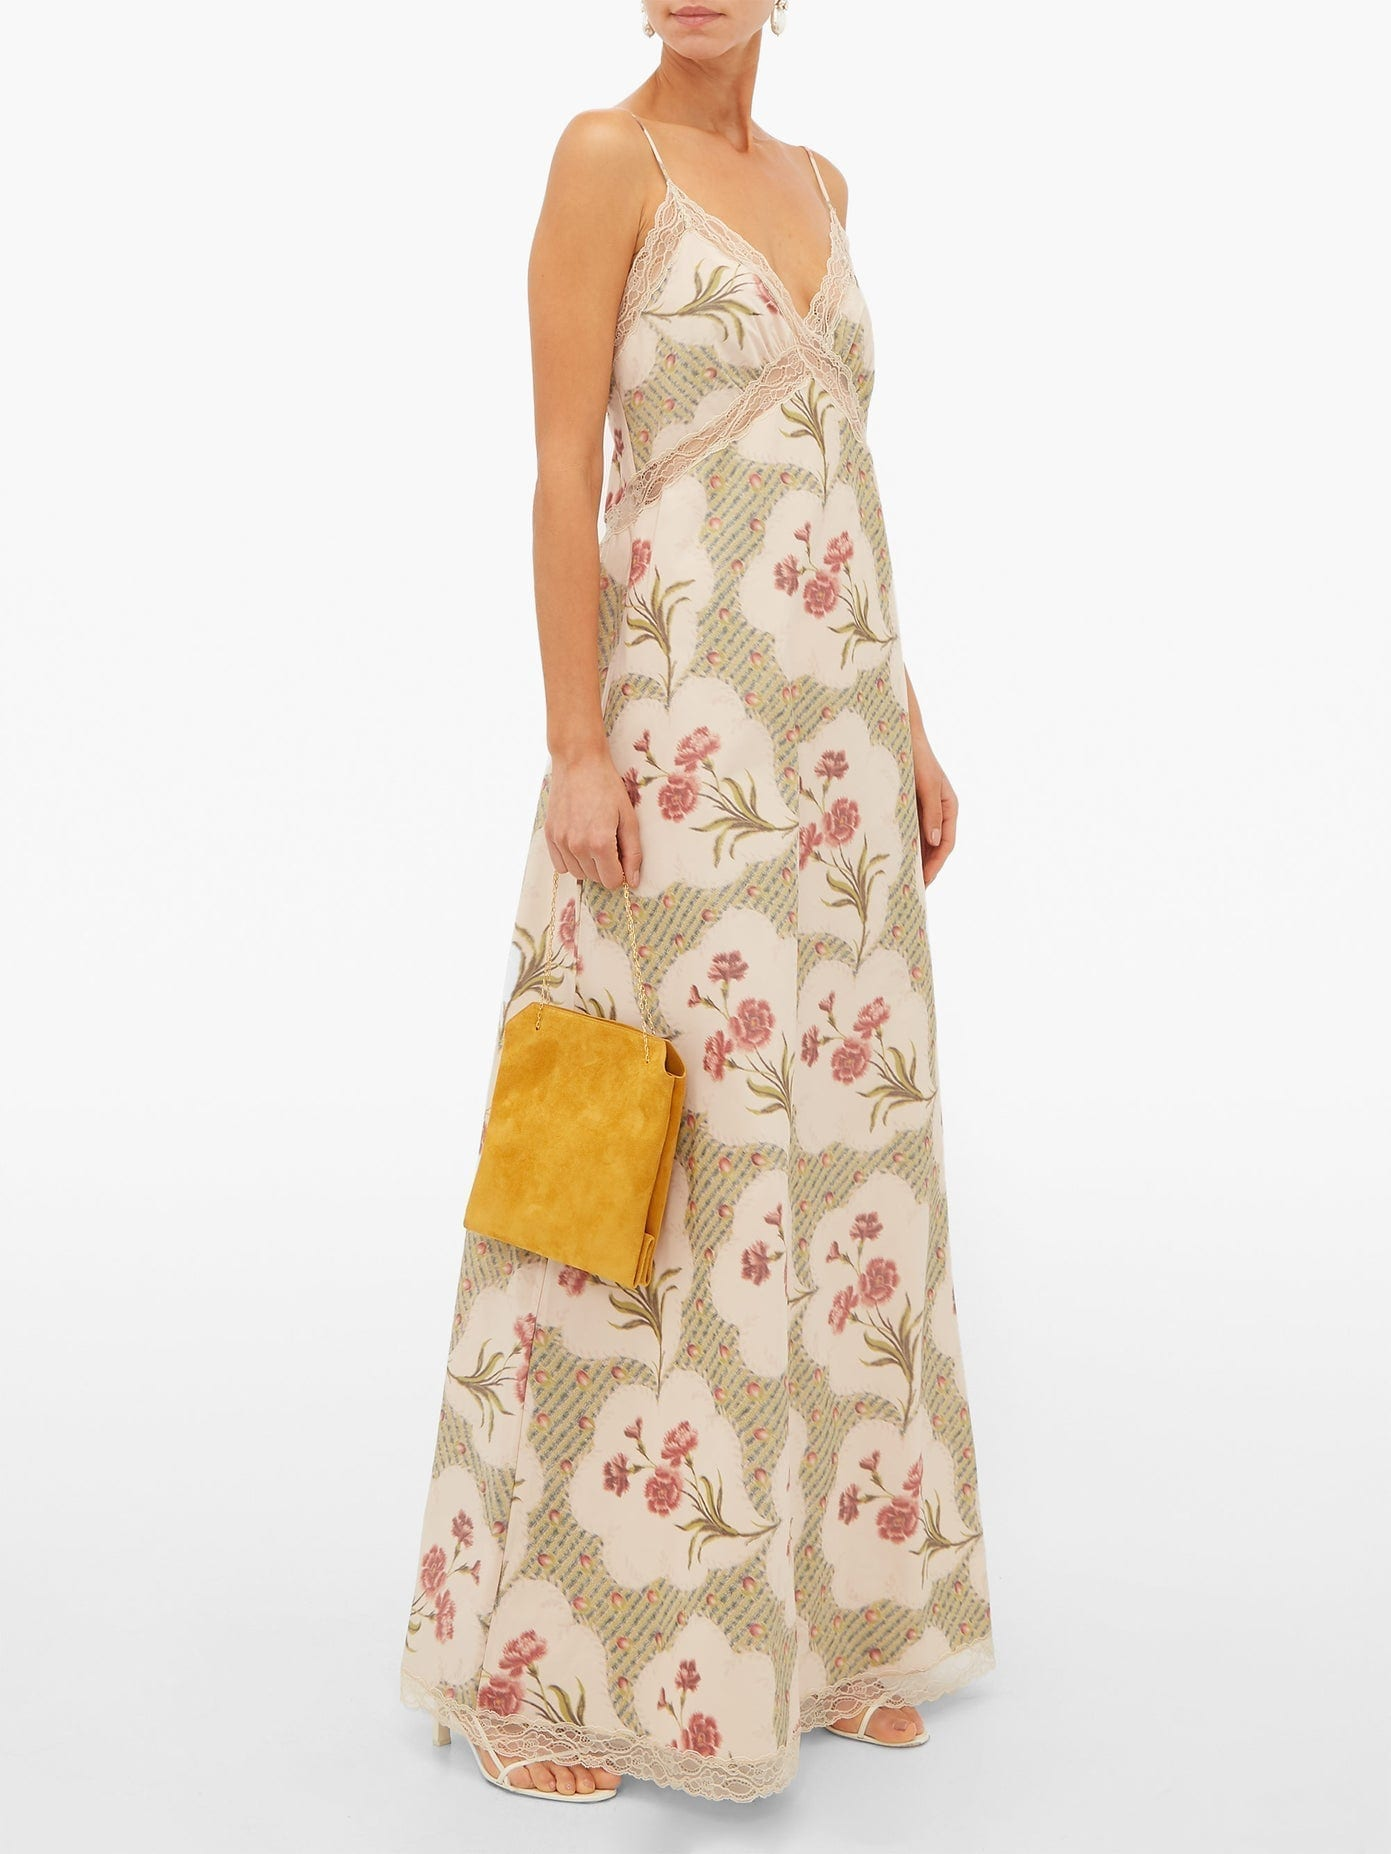 BROCK COLLECTION Onorino Floral-Print Cotton-Blend Gown